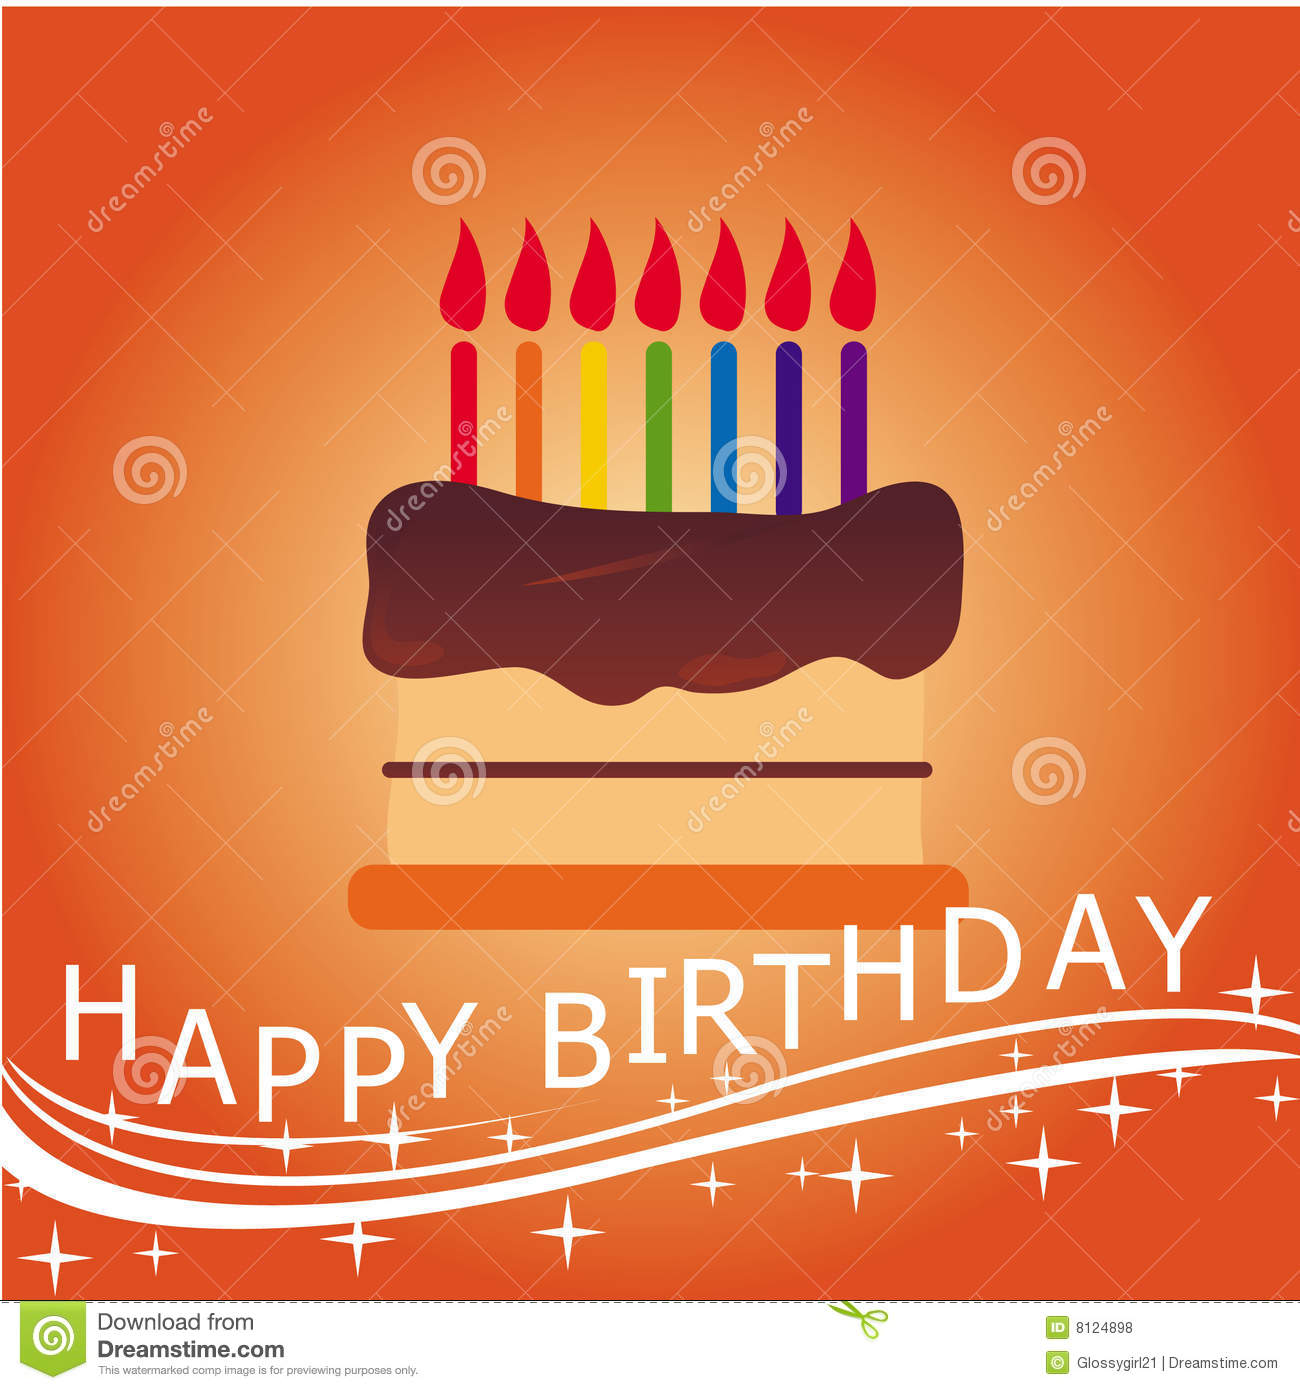 A Birthday Cake With Lighted Candles Happy Text And Swirls Sparkles Elements